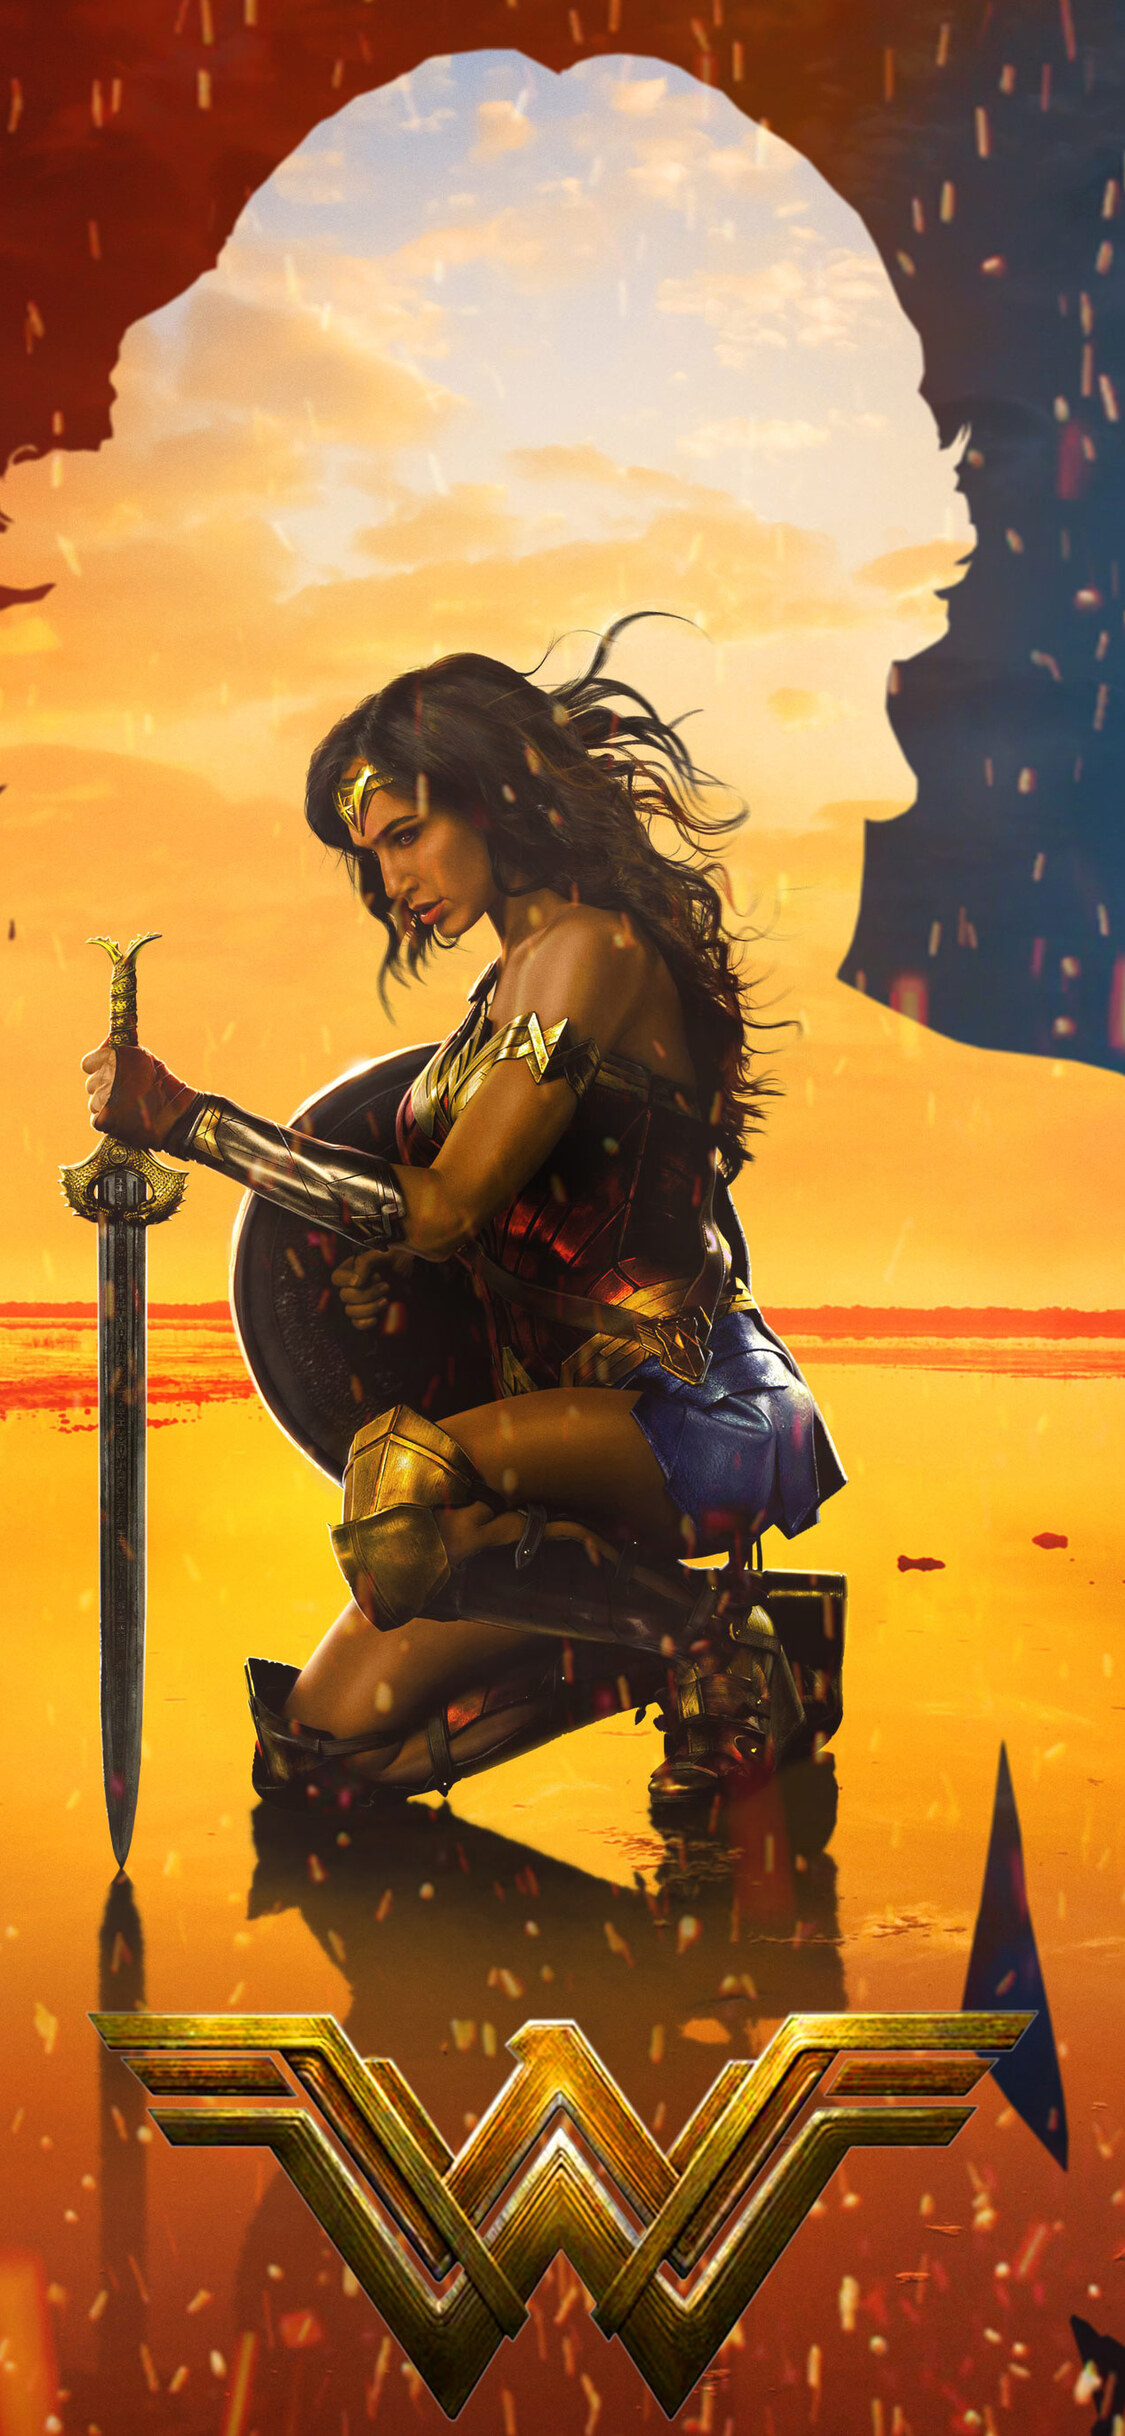 2017 Wonder Woman Artwork Po